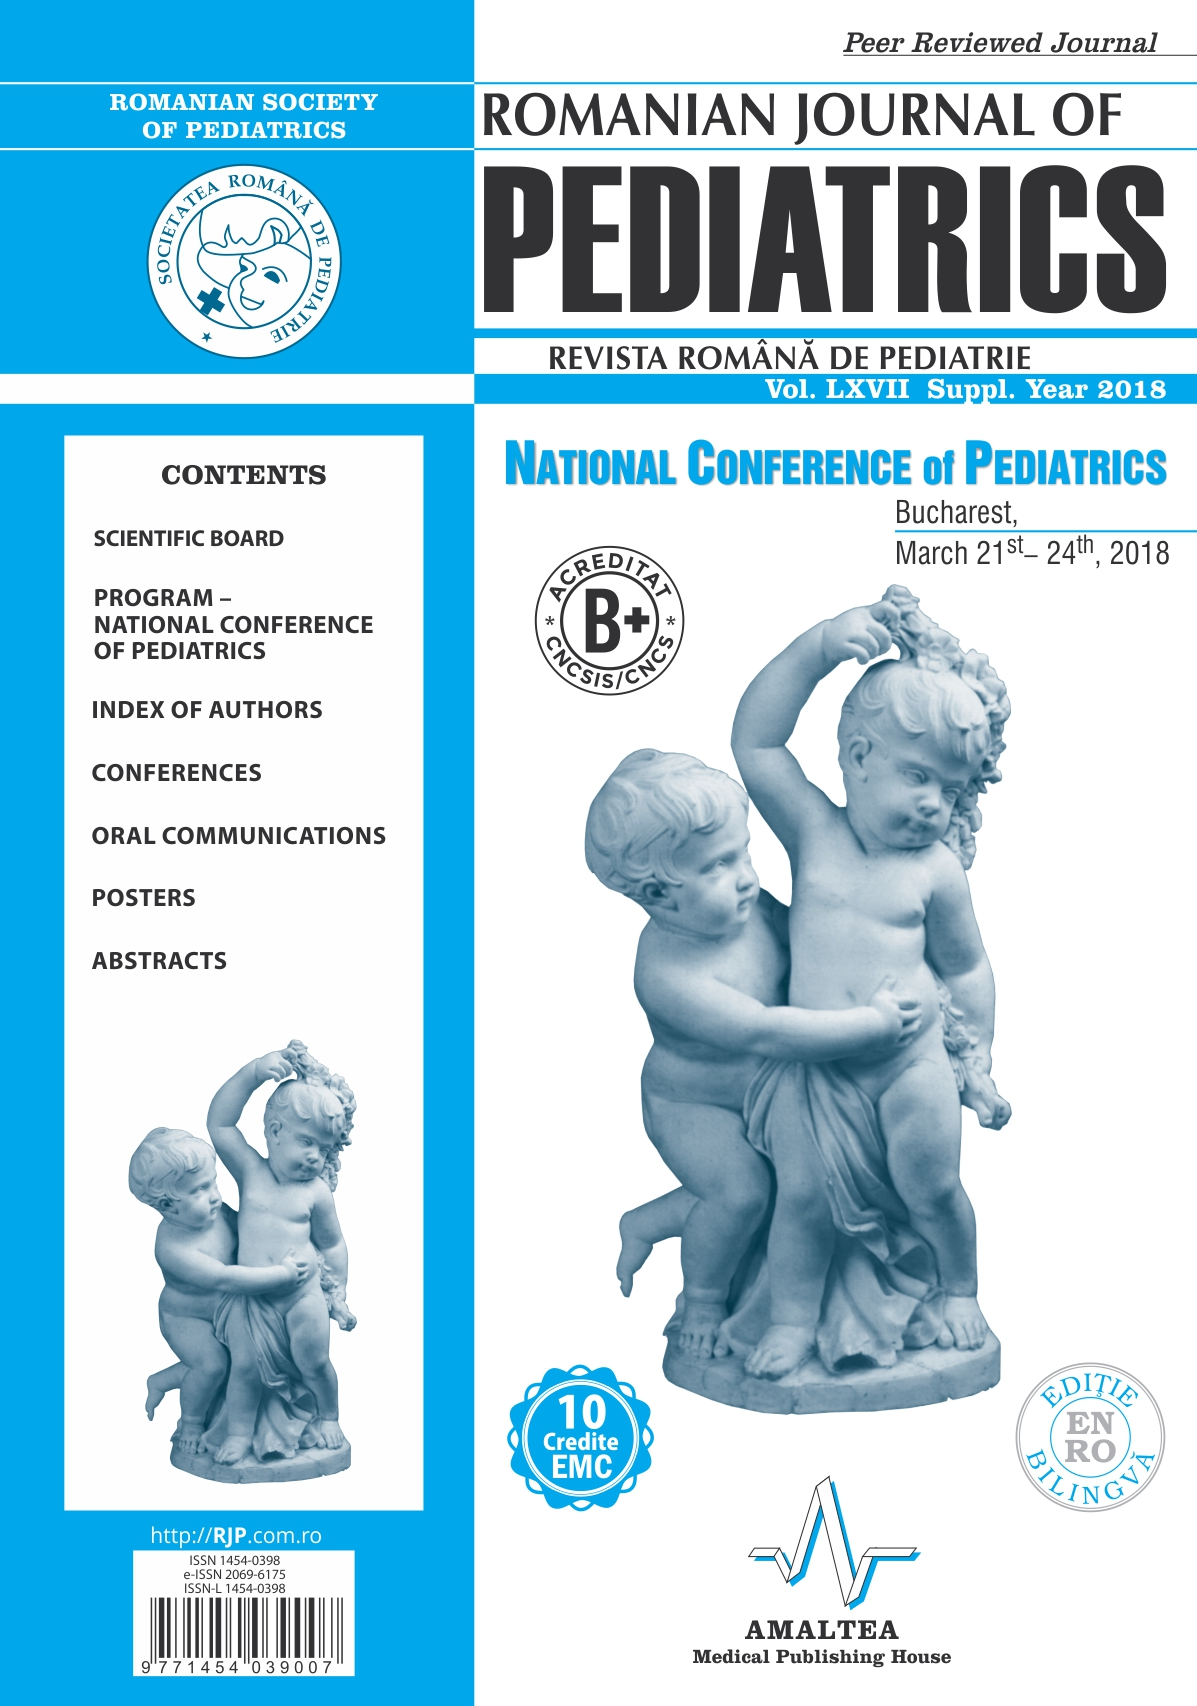 Romanian Journal of Pediatrics | Volume LXVII, Suppl., Year 2018